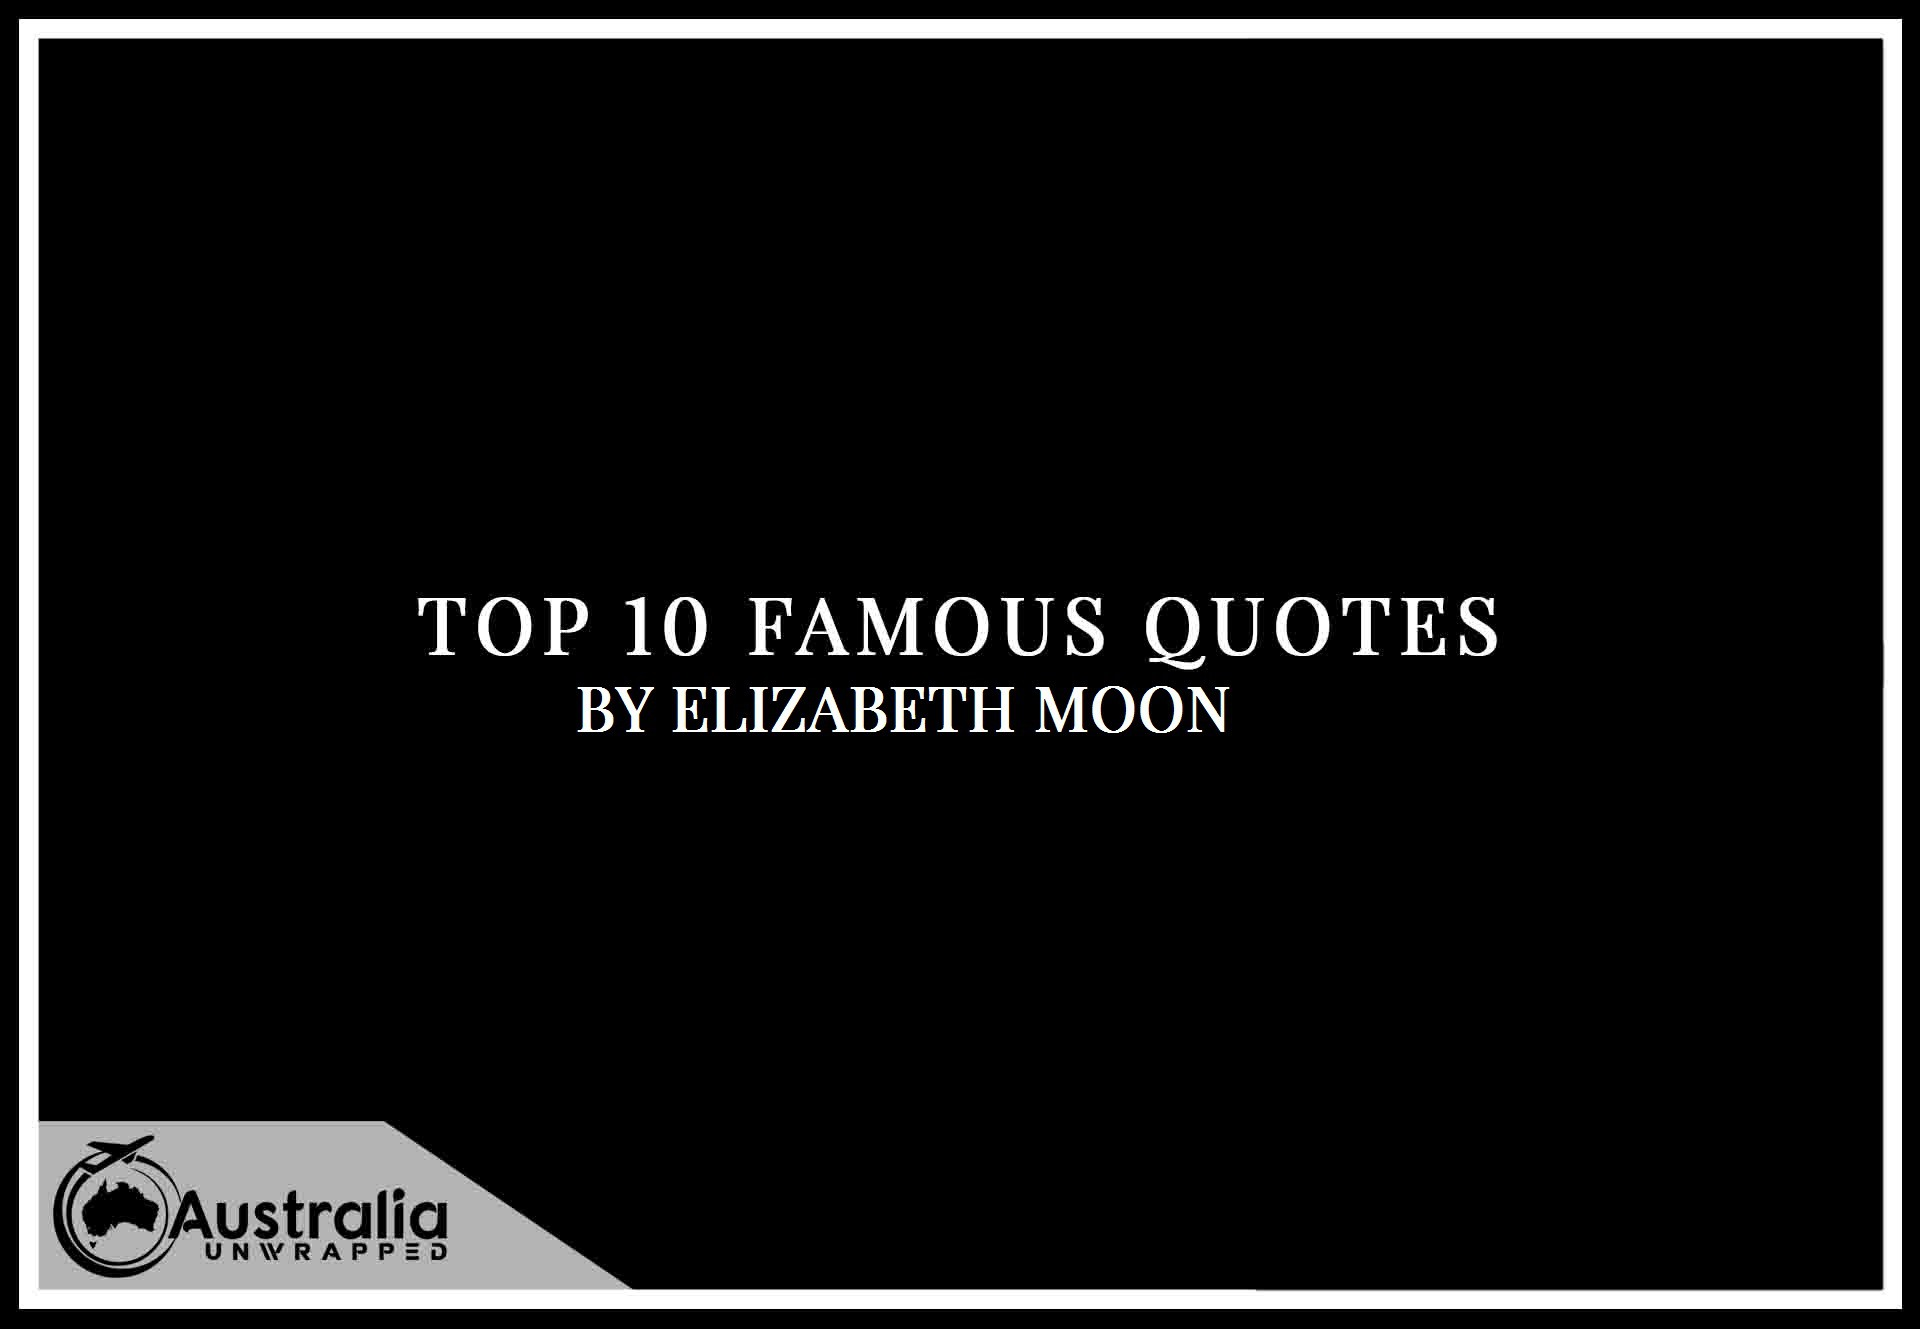 Elizabeth Moon's Top 10 Popular and Famous Quotes